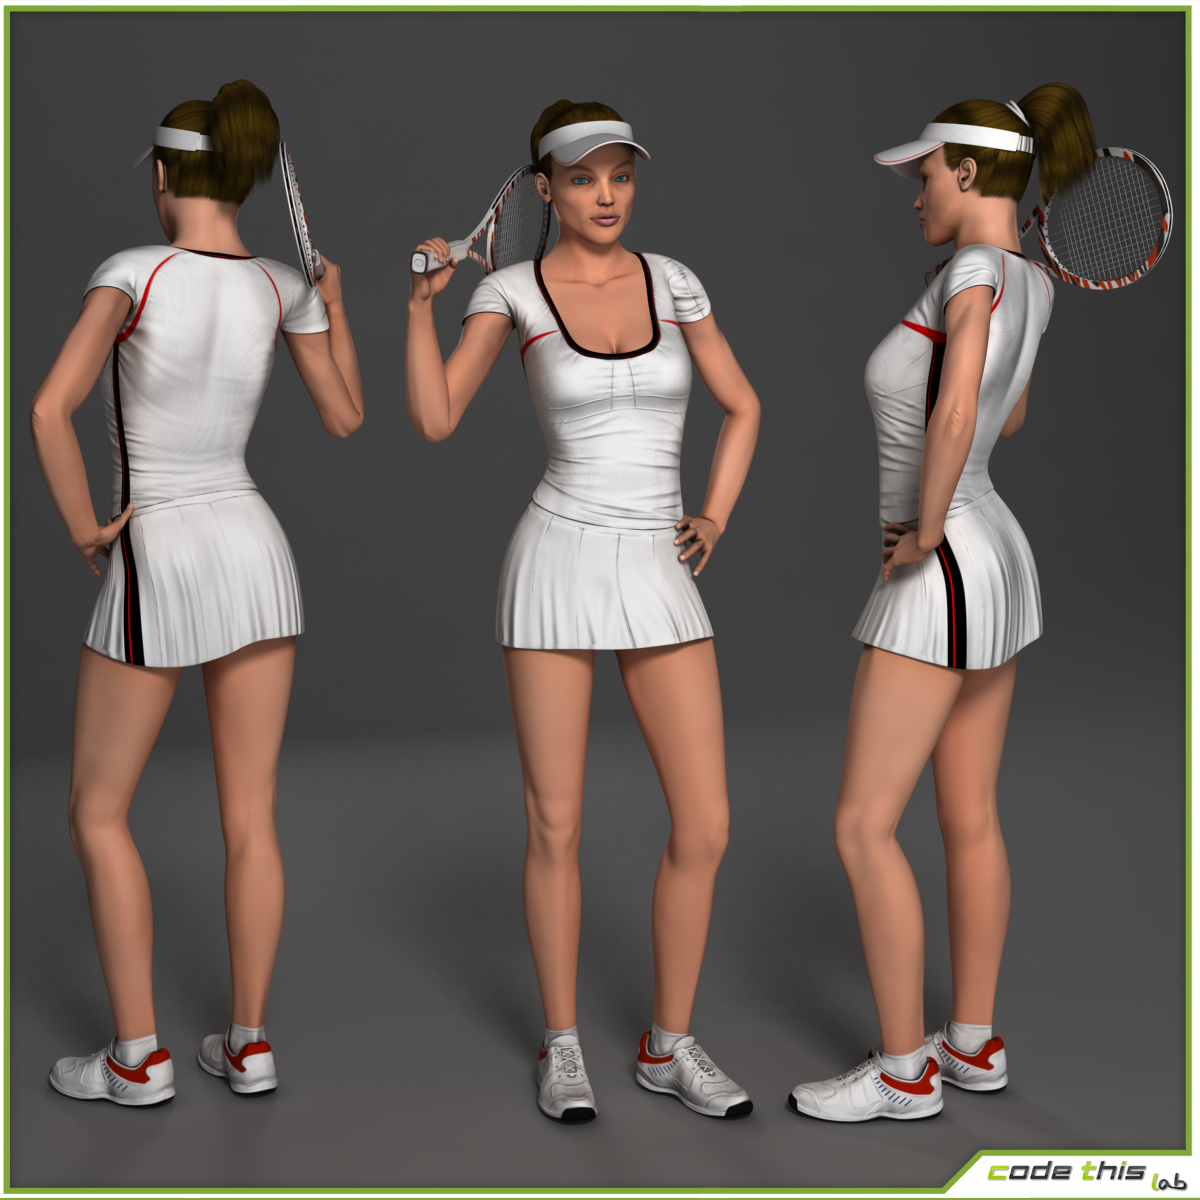 White Female Tennis Player CG 3D model